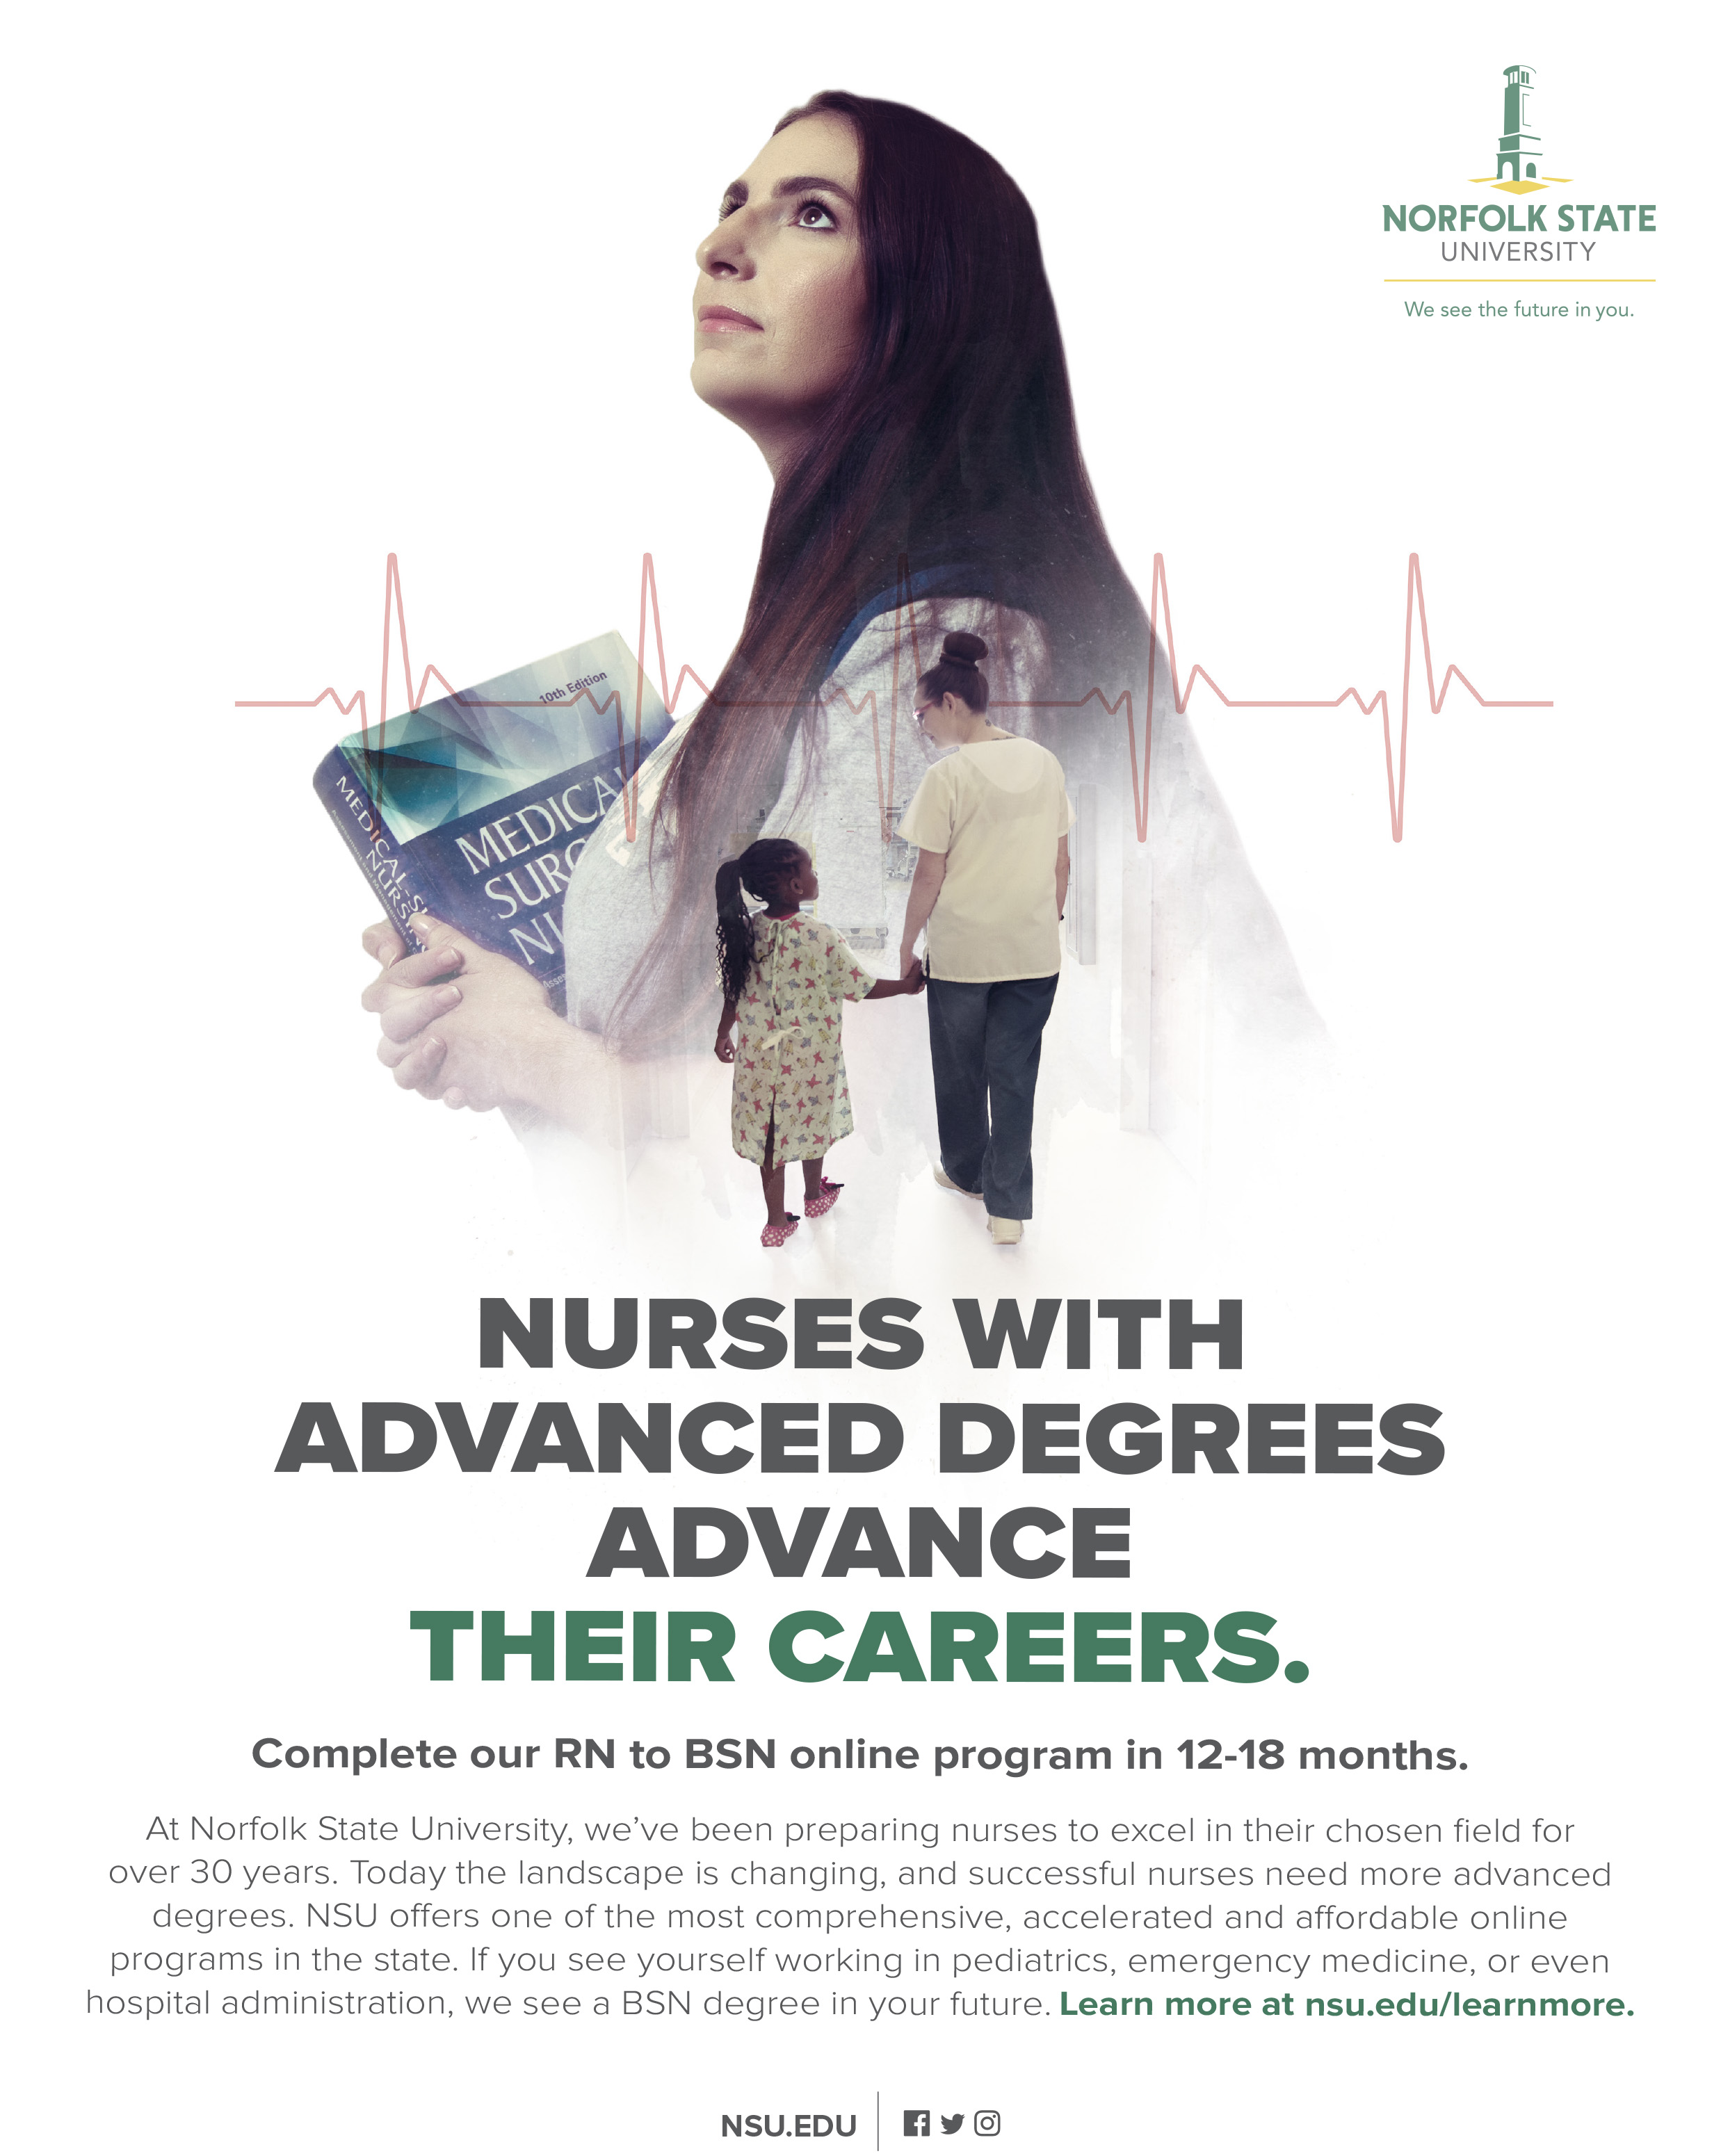 Nurses with Advanced Degrees advance their careers.Complete our RN to BSN online program in 12-18 months.At Norfolk State University, we've been preparing nurses to excel in their chosen field for over 30 years. Today the landscape is changing, and successful nurses need more advanced degrees. NSU offers one of the most comprehensive, accelerated and affordable online programs in the state. If you see yourself working in pediatrics, emergency medicine, or even hospital administration, we see a BSN degree in your future. Learn more at nsu.edu/learnmore